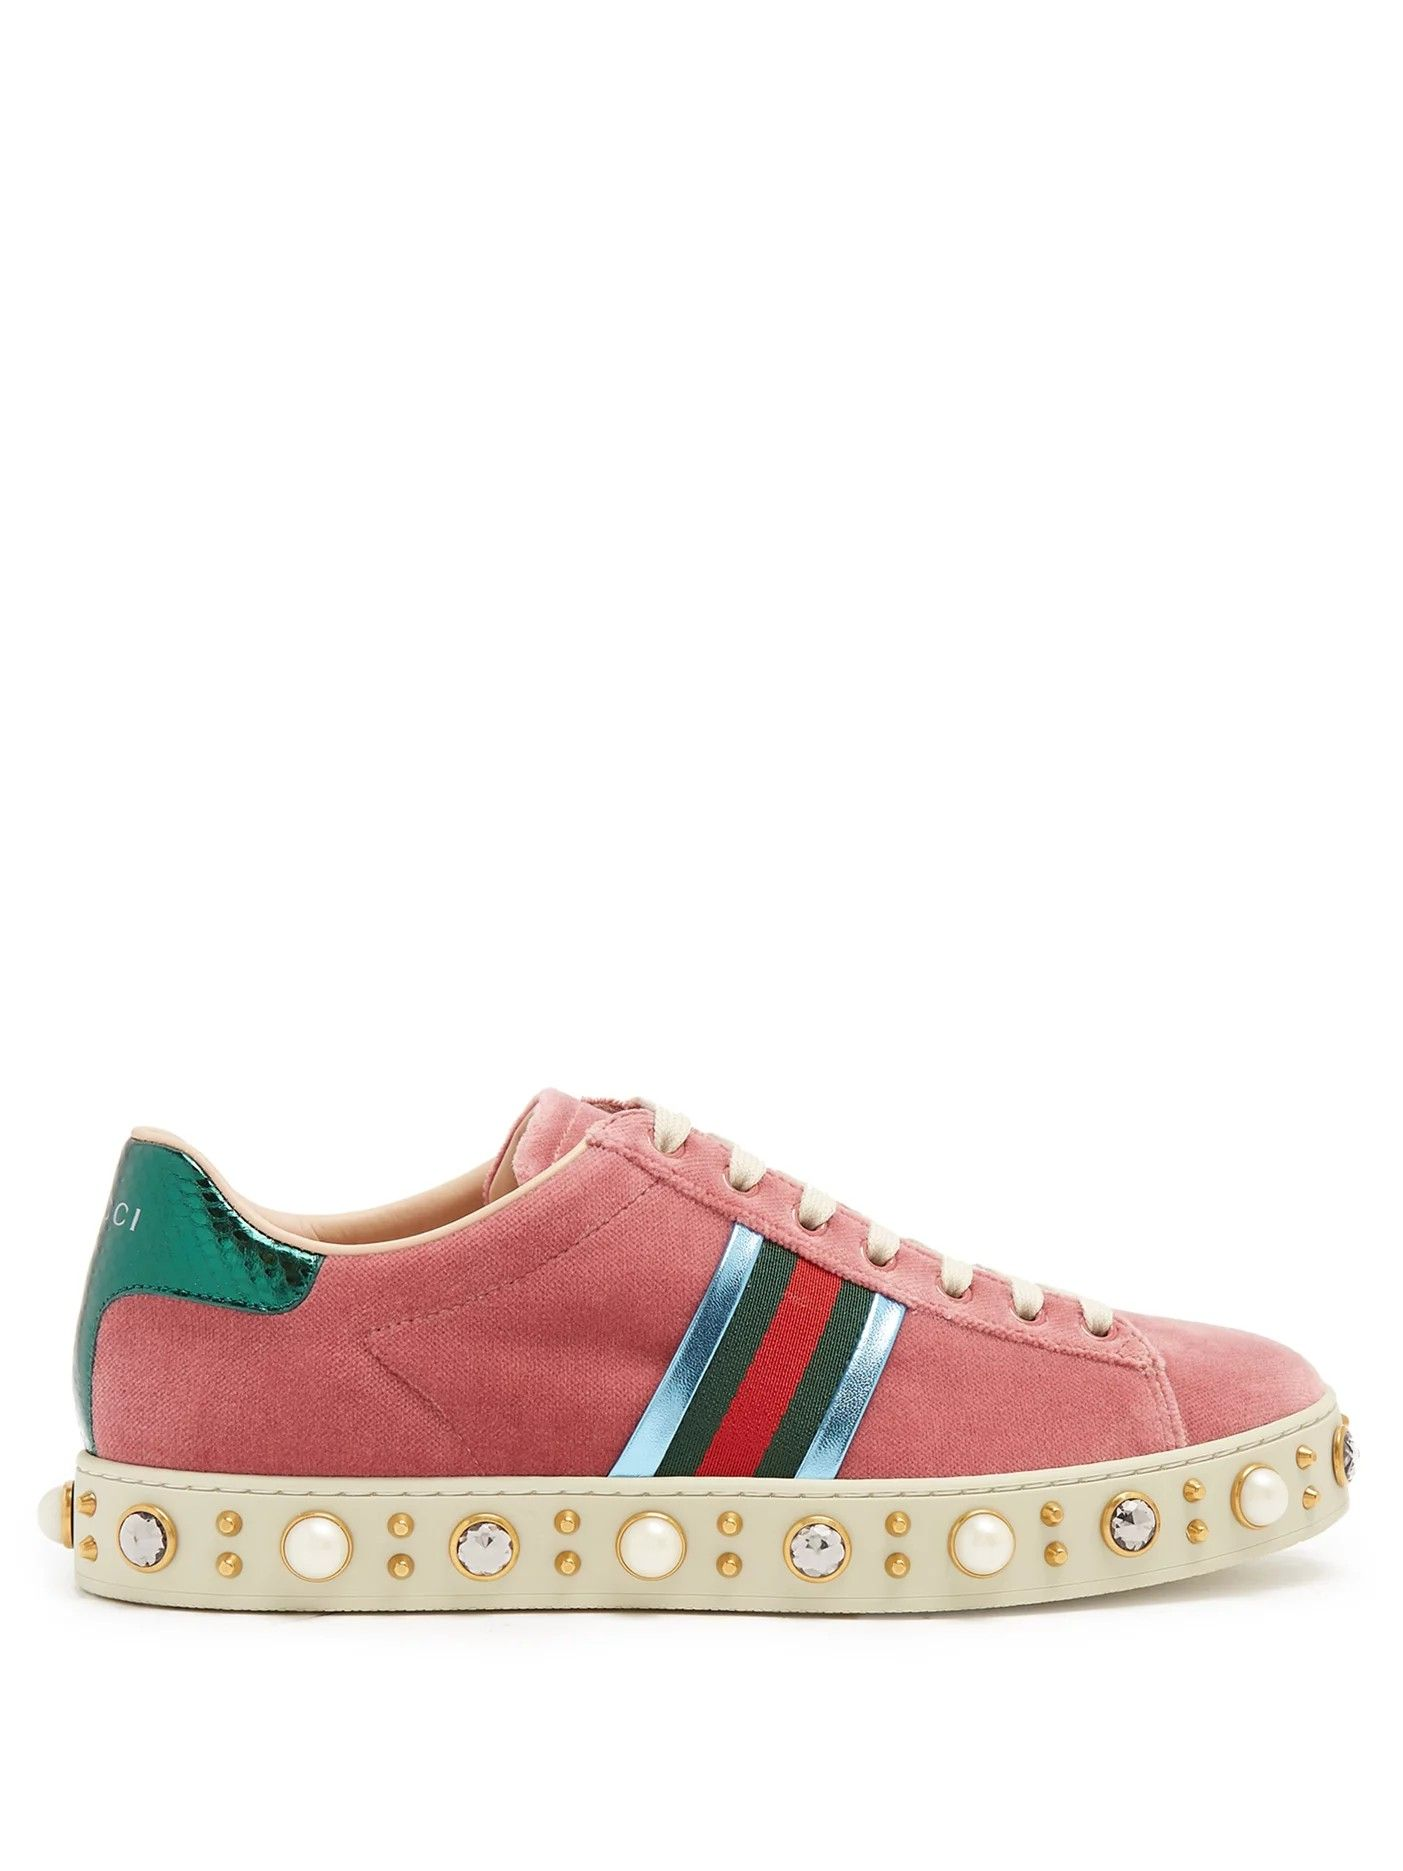 484f9cc9930 980 matches Studded Sneakers